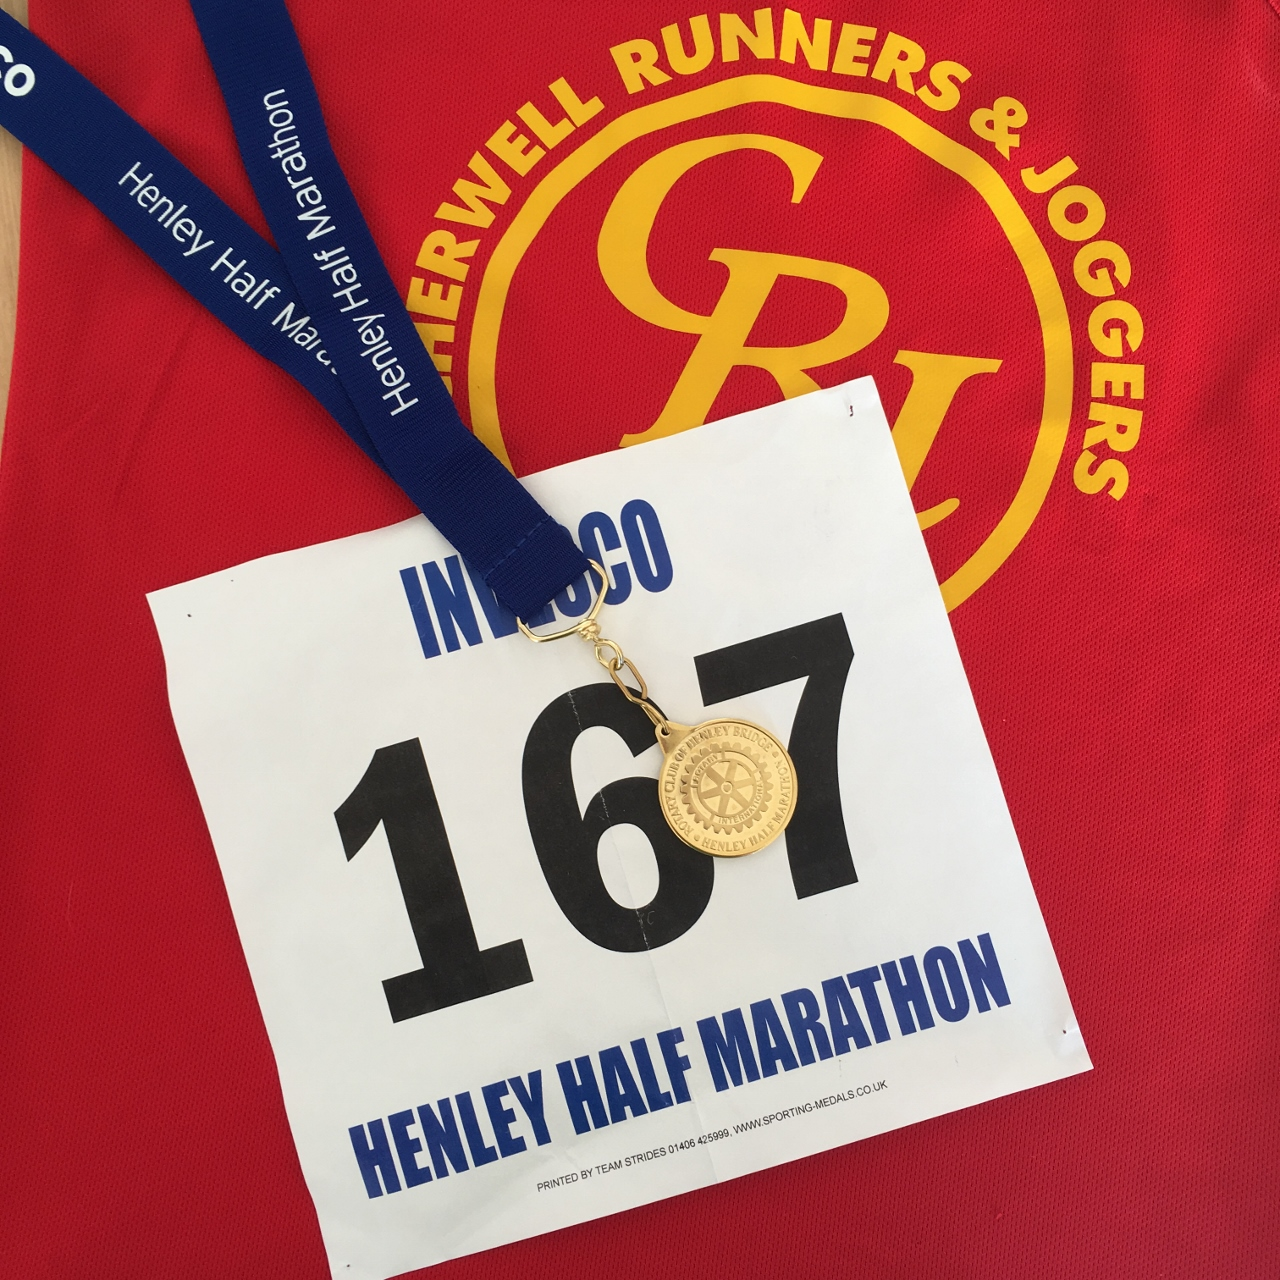 Henley half marathon race bib and medal